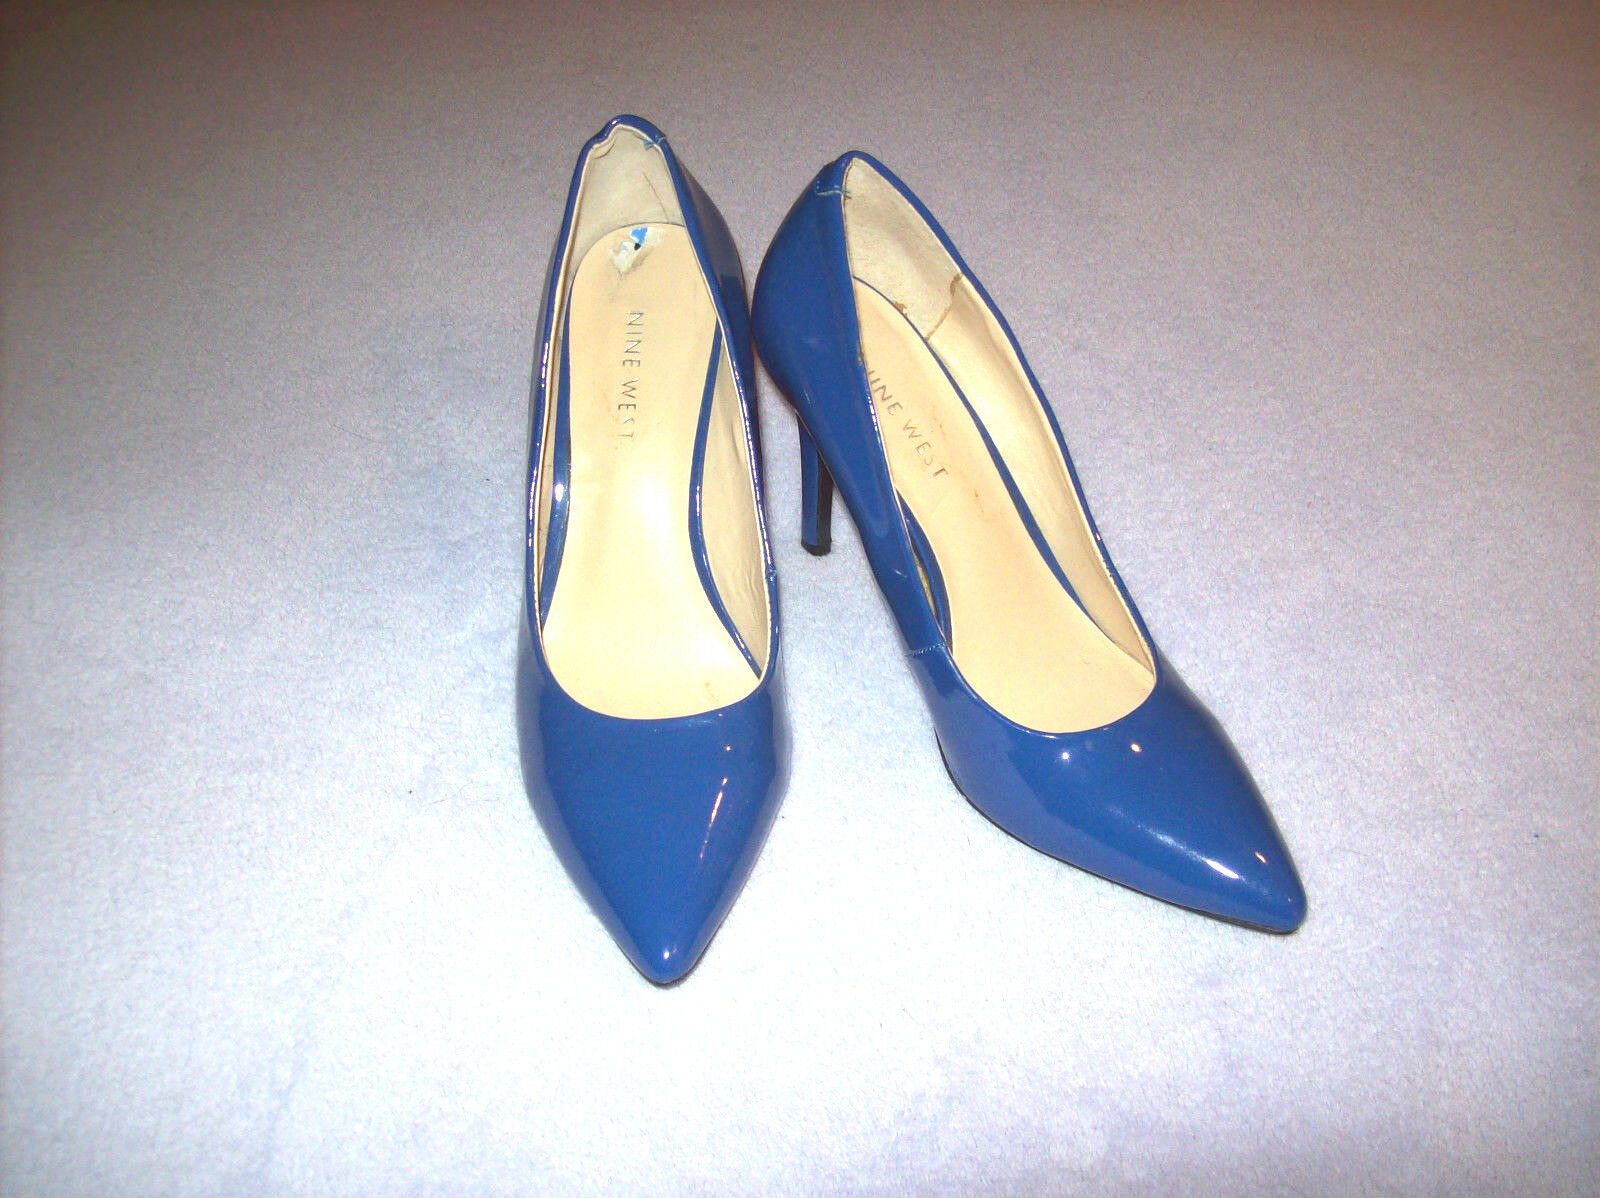 ordina ora con grande sconto e consegna gratuita LADIES NEW ROYAL blu PATENT LEATHER DRESS PUMPS BY    NINE WEST Dimensione 6 1 2 MEDIUM  contatore genuino